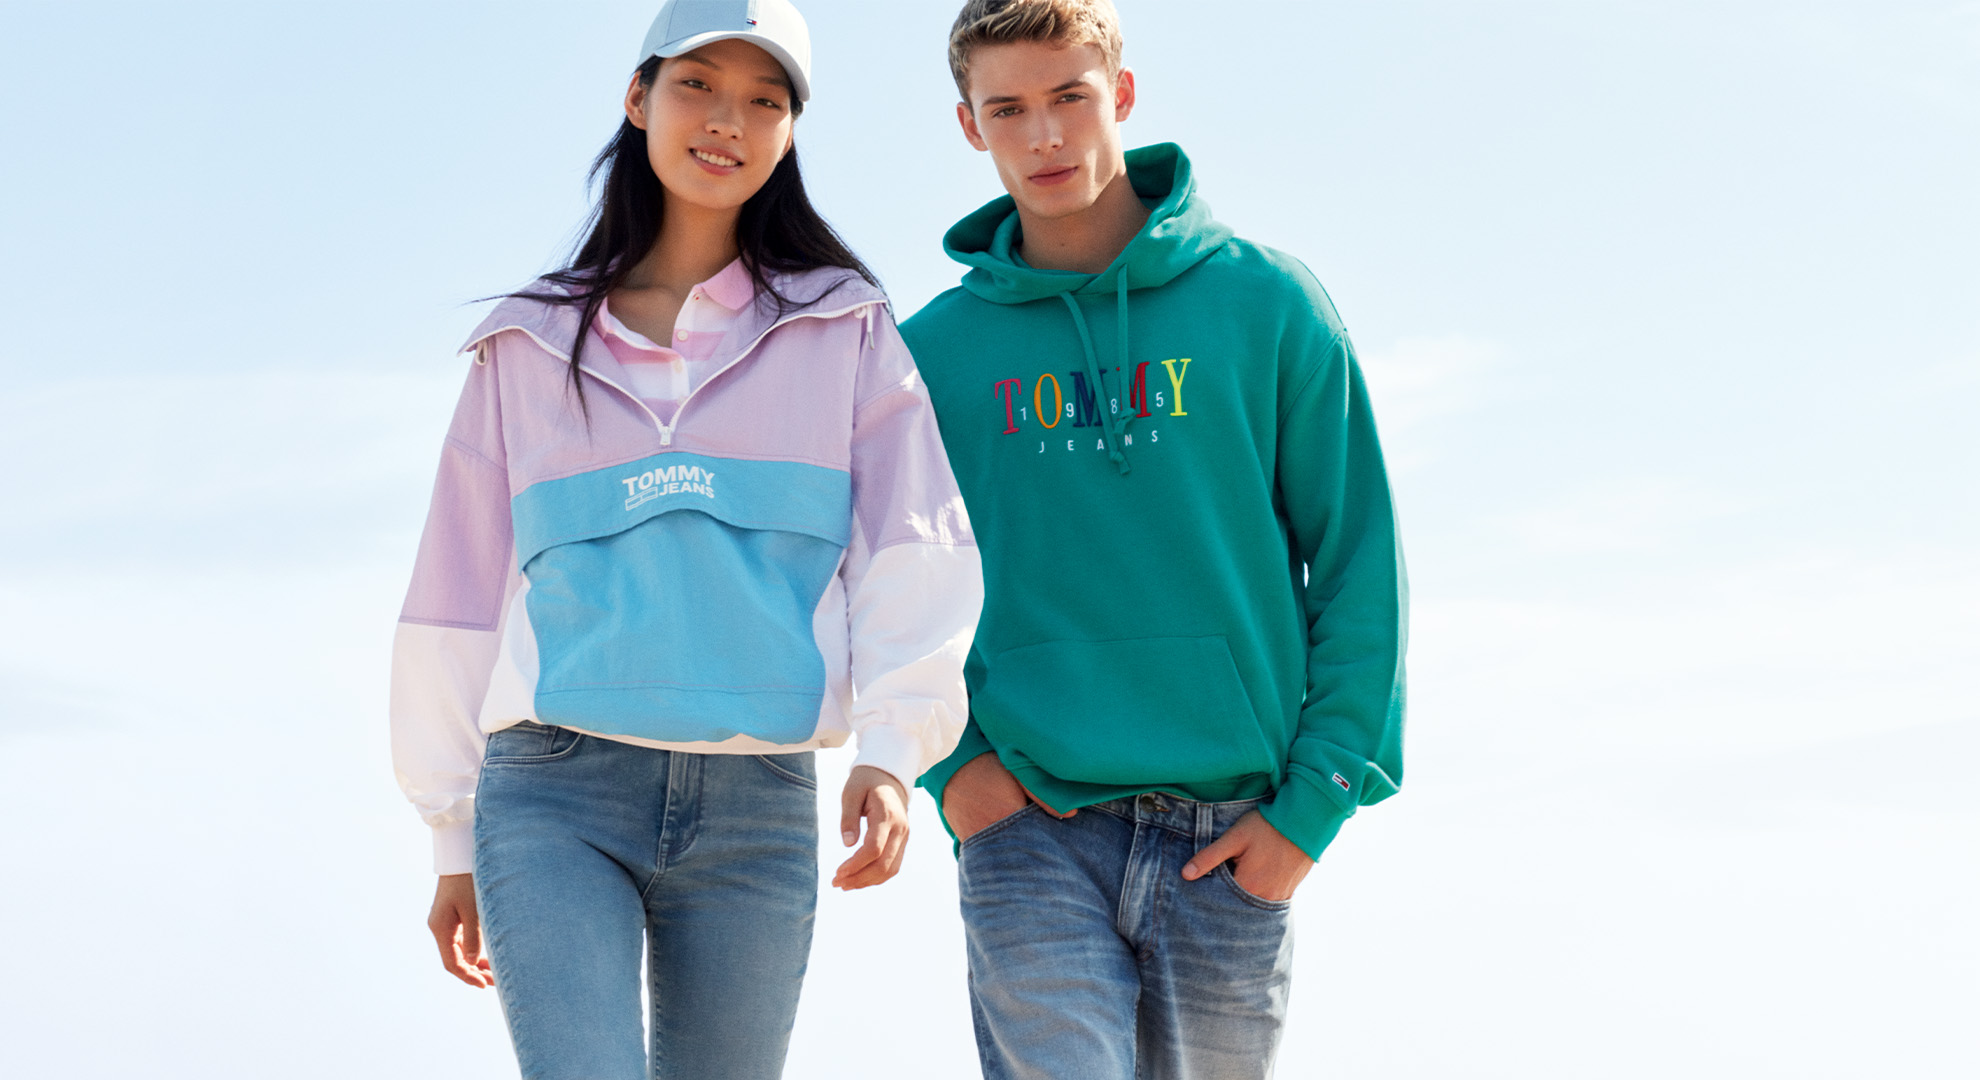 Man and woman walking on the beach in Tommy Hilifiger clothing